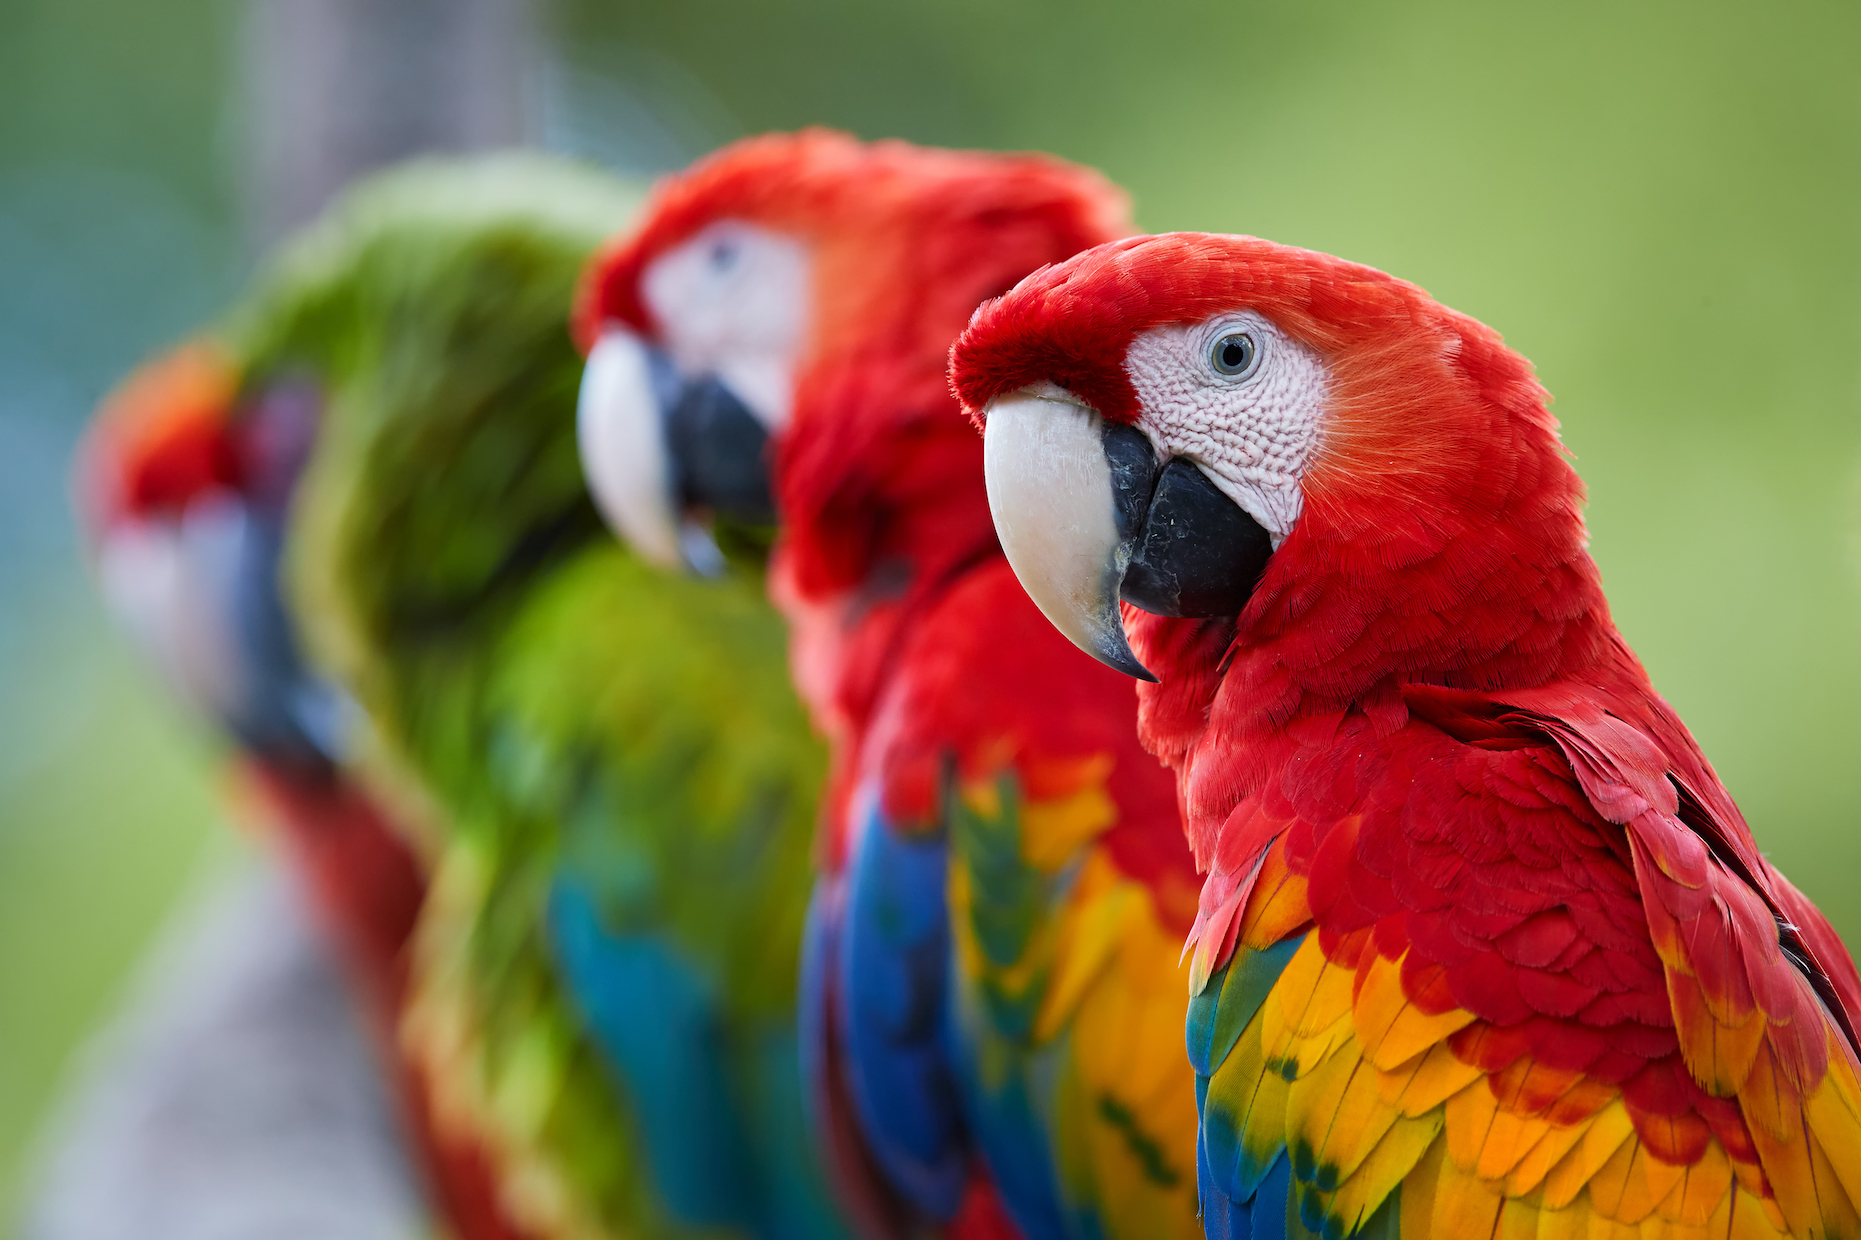 Parrots may blush and ruffle their feathers to communicate non-verbally with their caretakers and other birds.